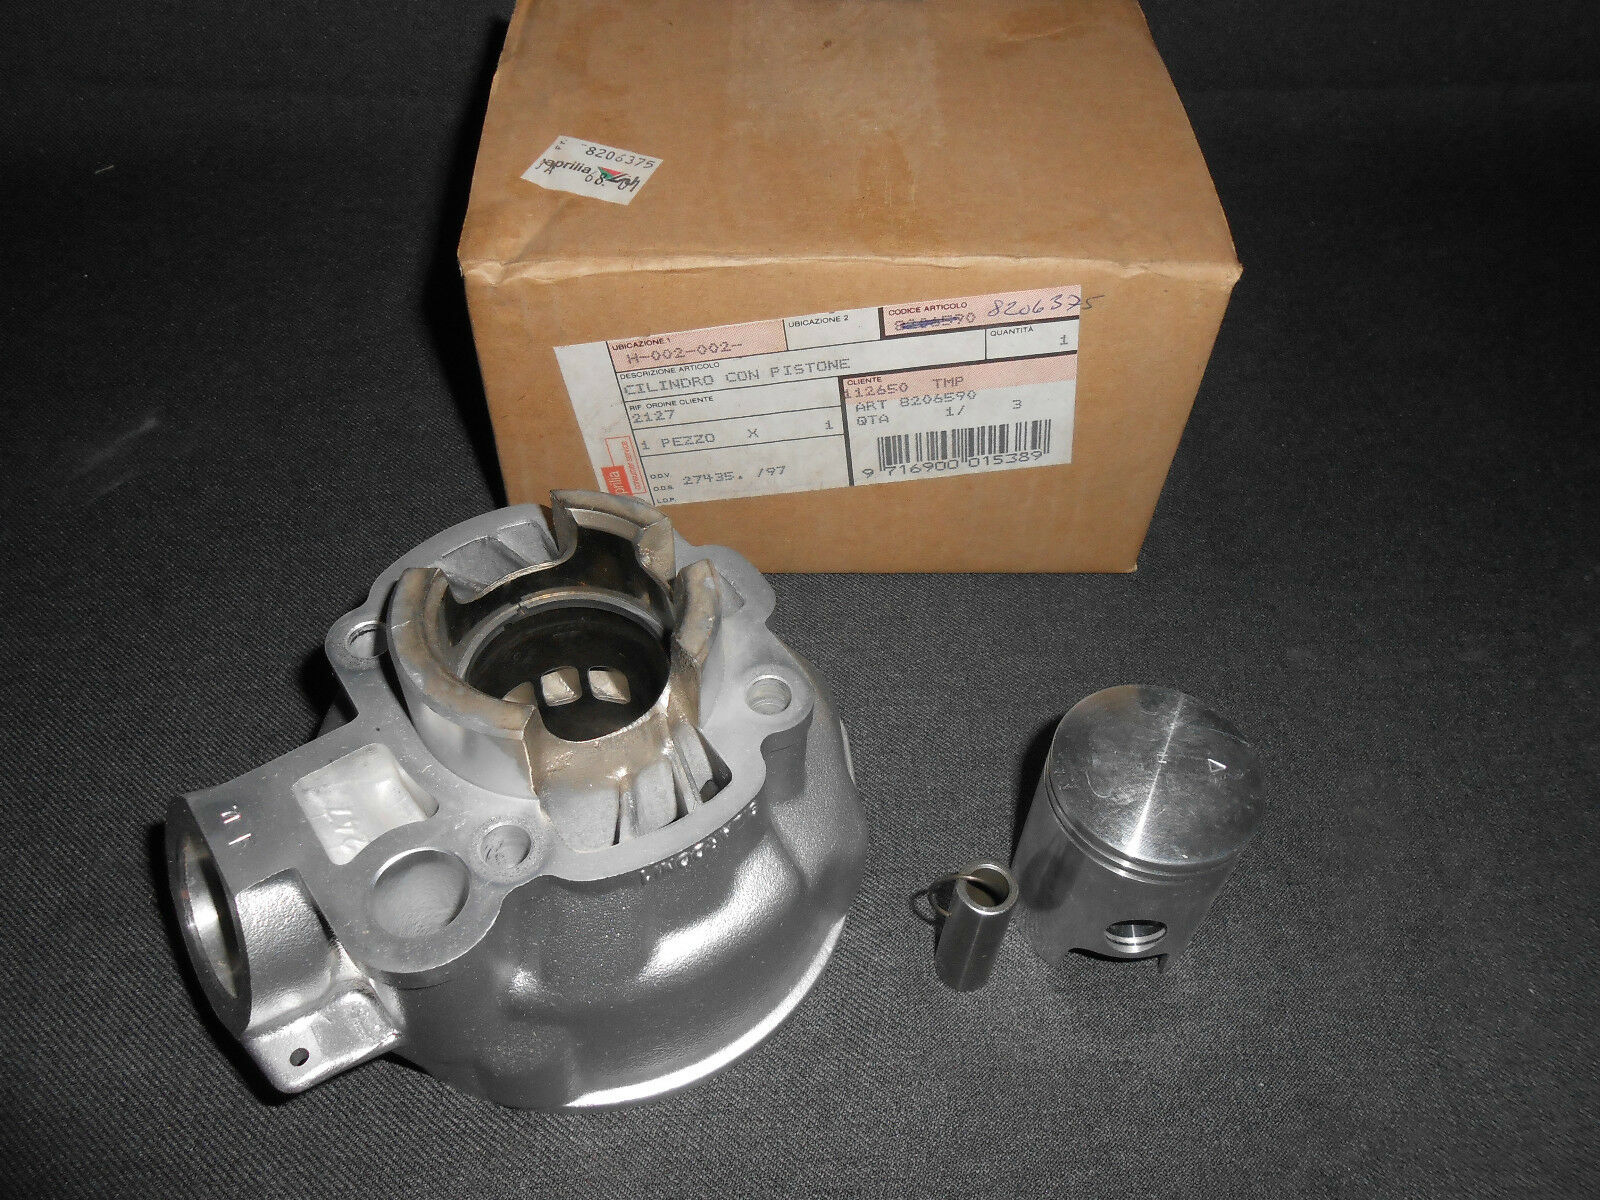 New Genuine Aprilia Rs50 Rx50 Mx50 Classic Cyl With Piston D403 Rx 50 Wiring Ap8206375 Gb 1 Of 3only Available